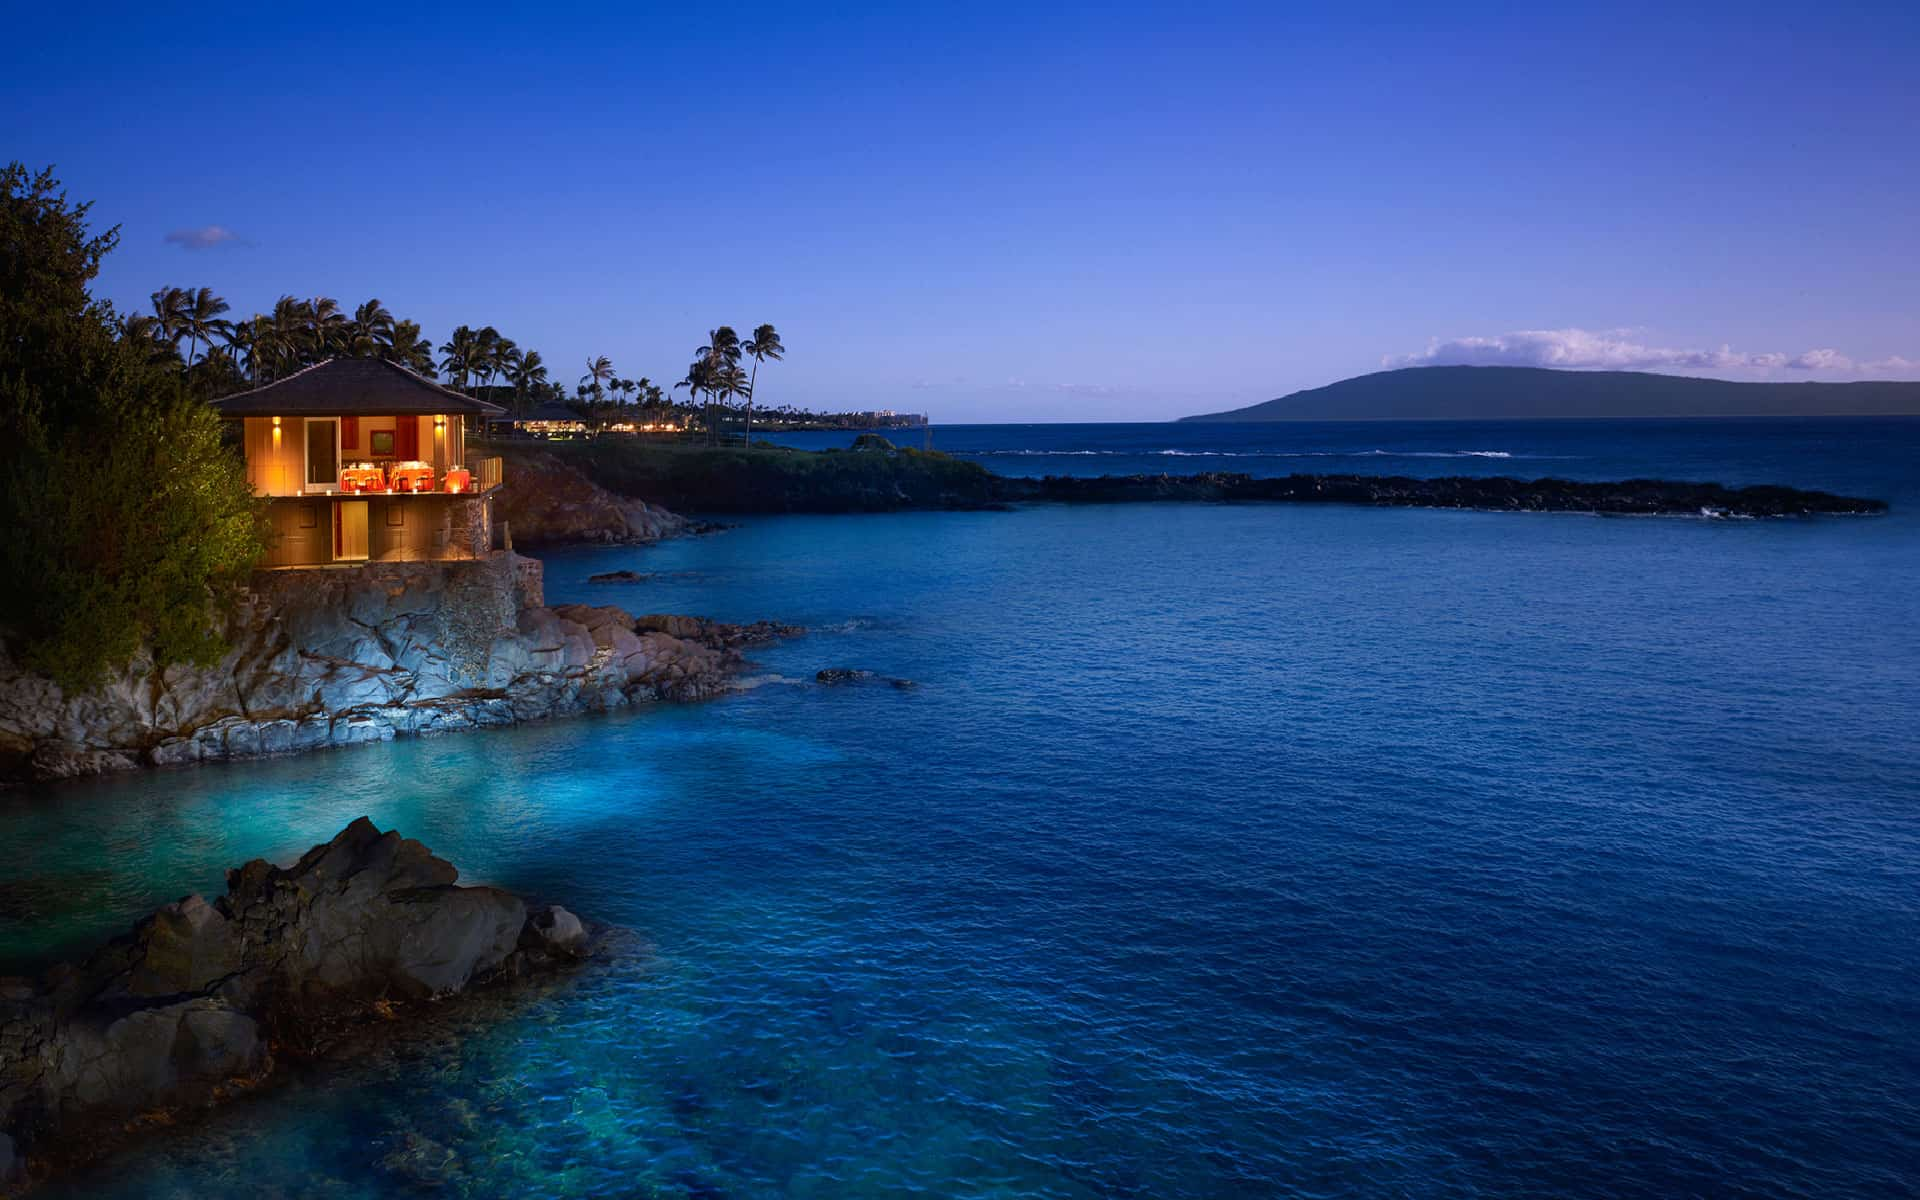 Montage Kapalua Bay's Cliff House Ocean Front Venue at Night